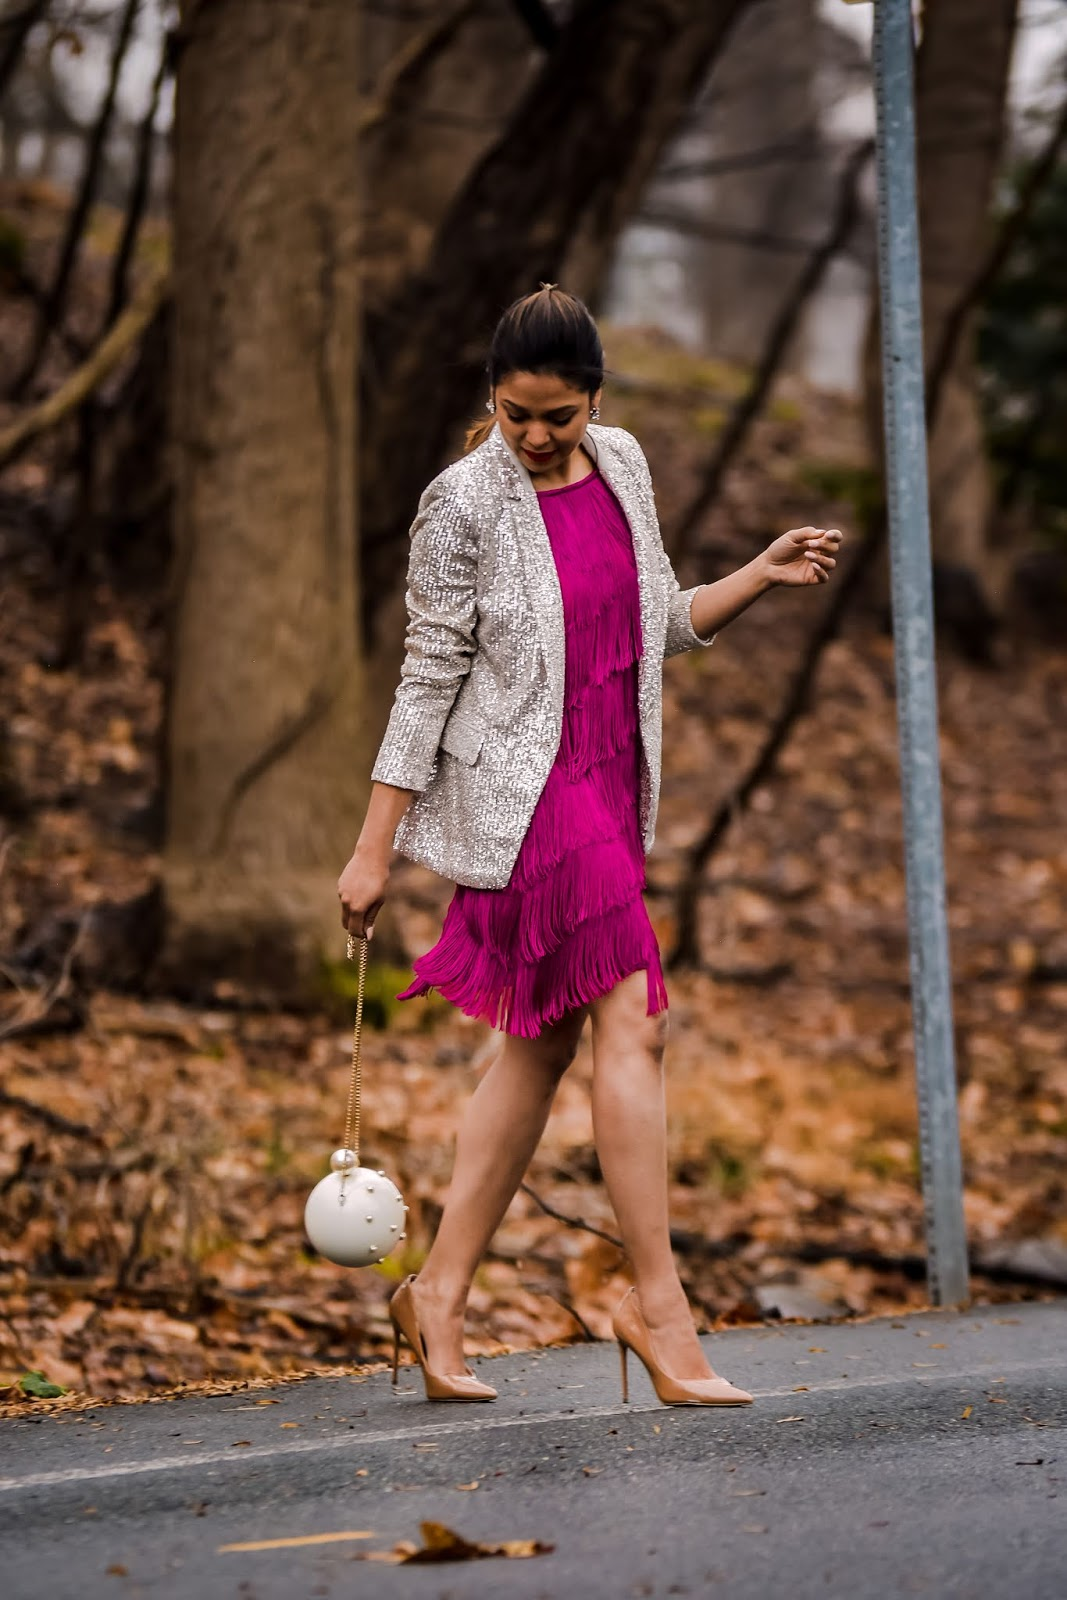 tassel pink dress, Gatsby theme party outfit, sequin, valentine's day outfit idea, sequin blazer, fashion, street style, ootd, outfit, nude heels, banana republic jacket.